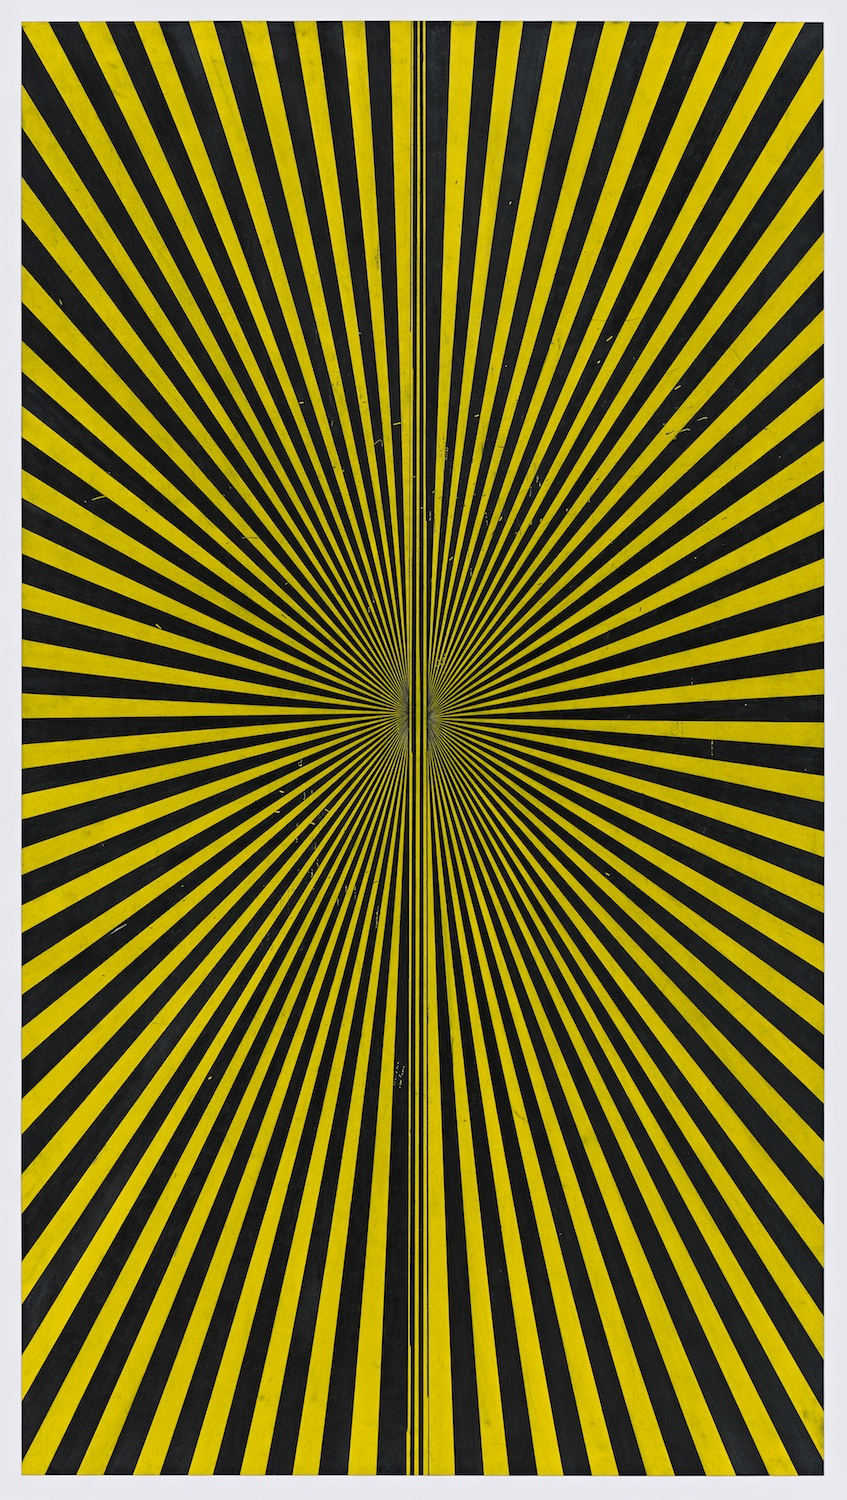 Mark Grotjahn  Untitled (Black and Canary Yellow Butterfly 45.11)  2013 Color pencil on paper 76h x 42w in MG45.11